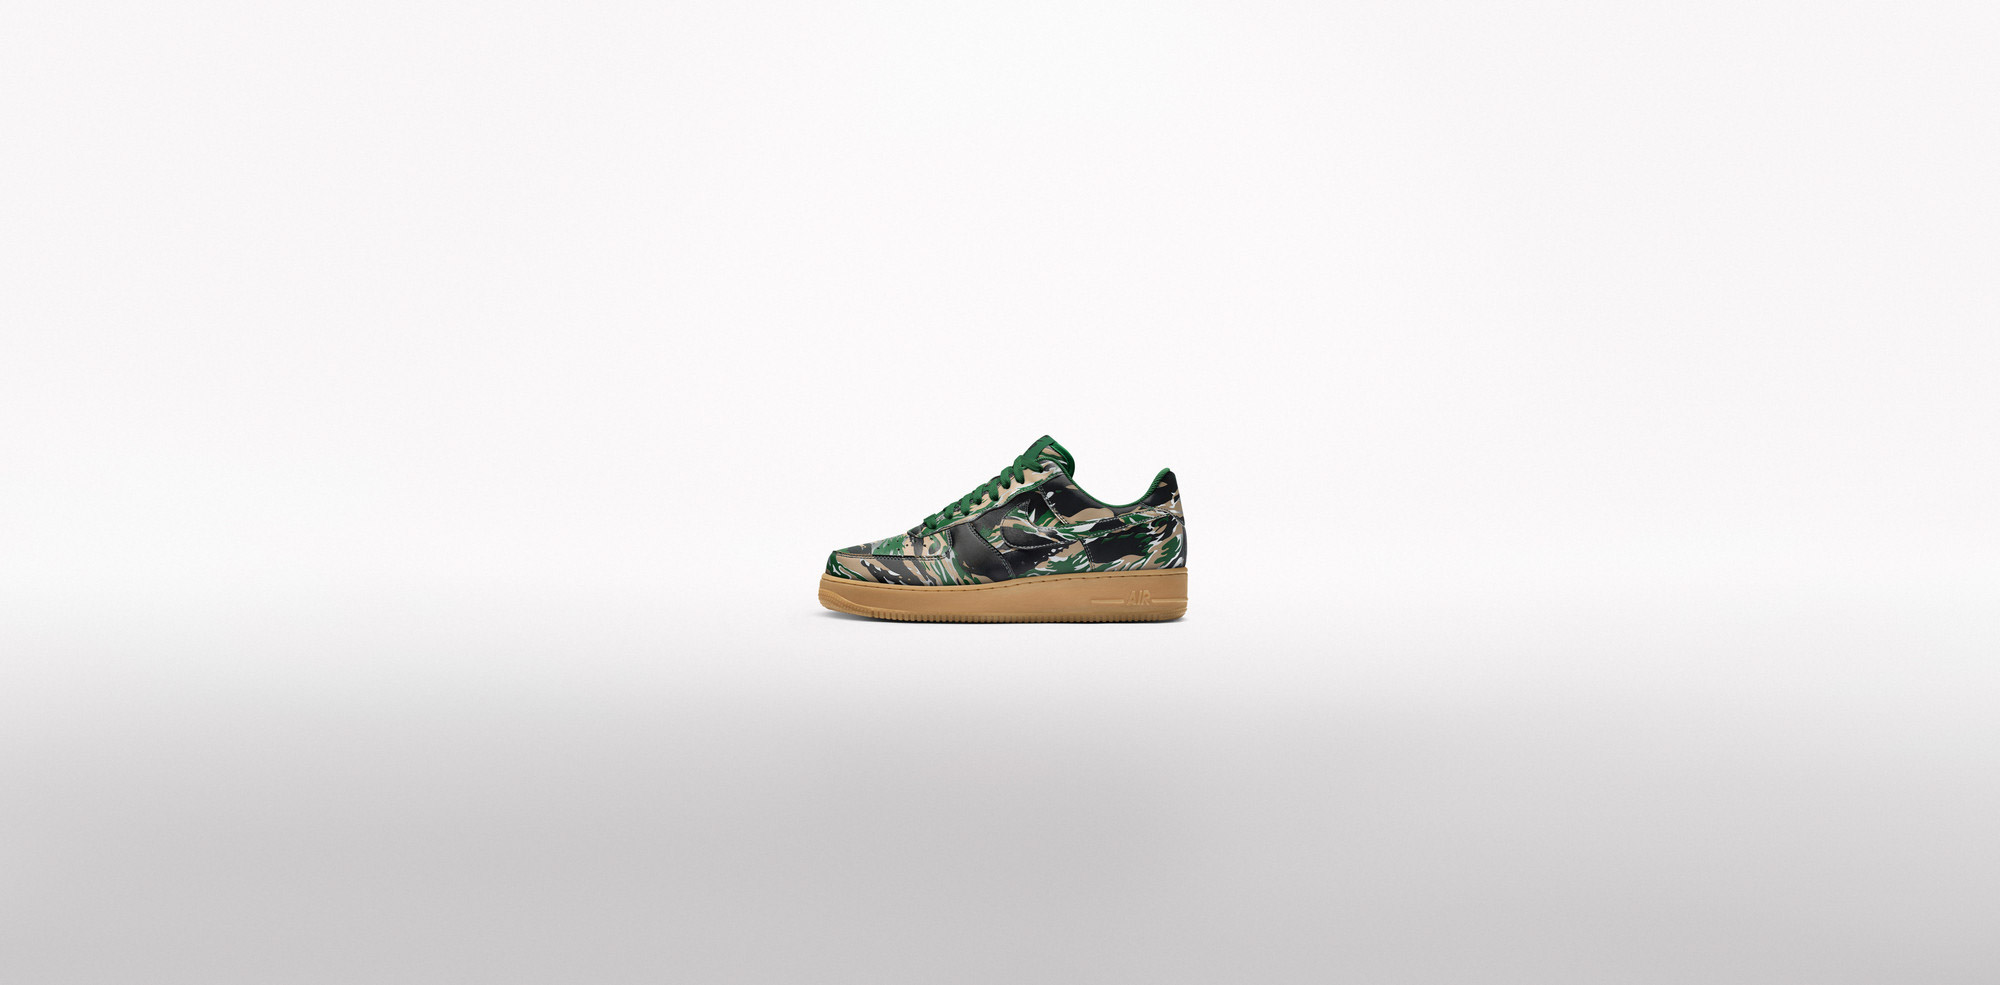 Nike Air Force 1 iD Camo 8